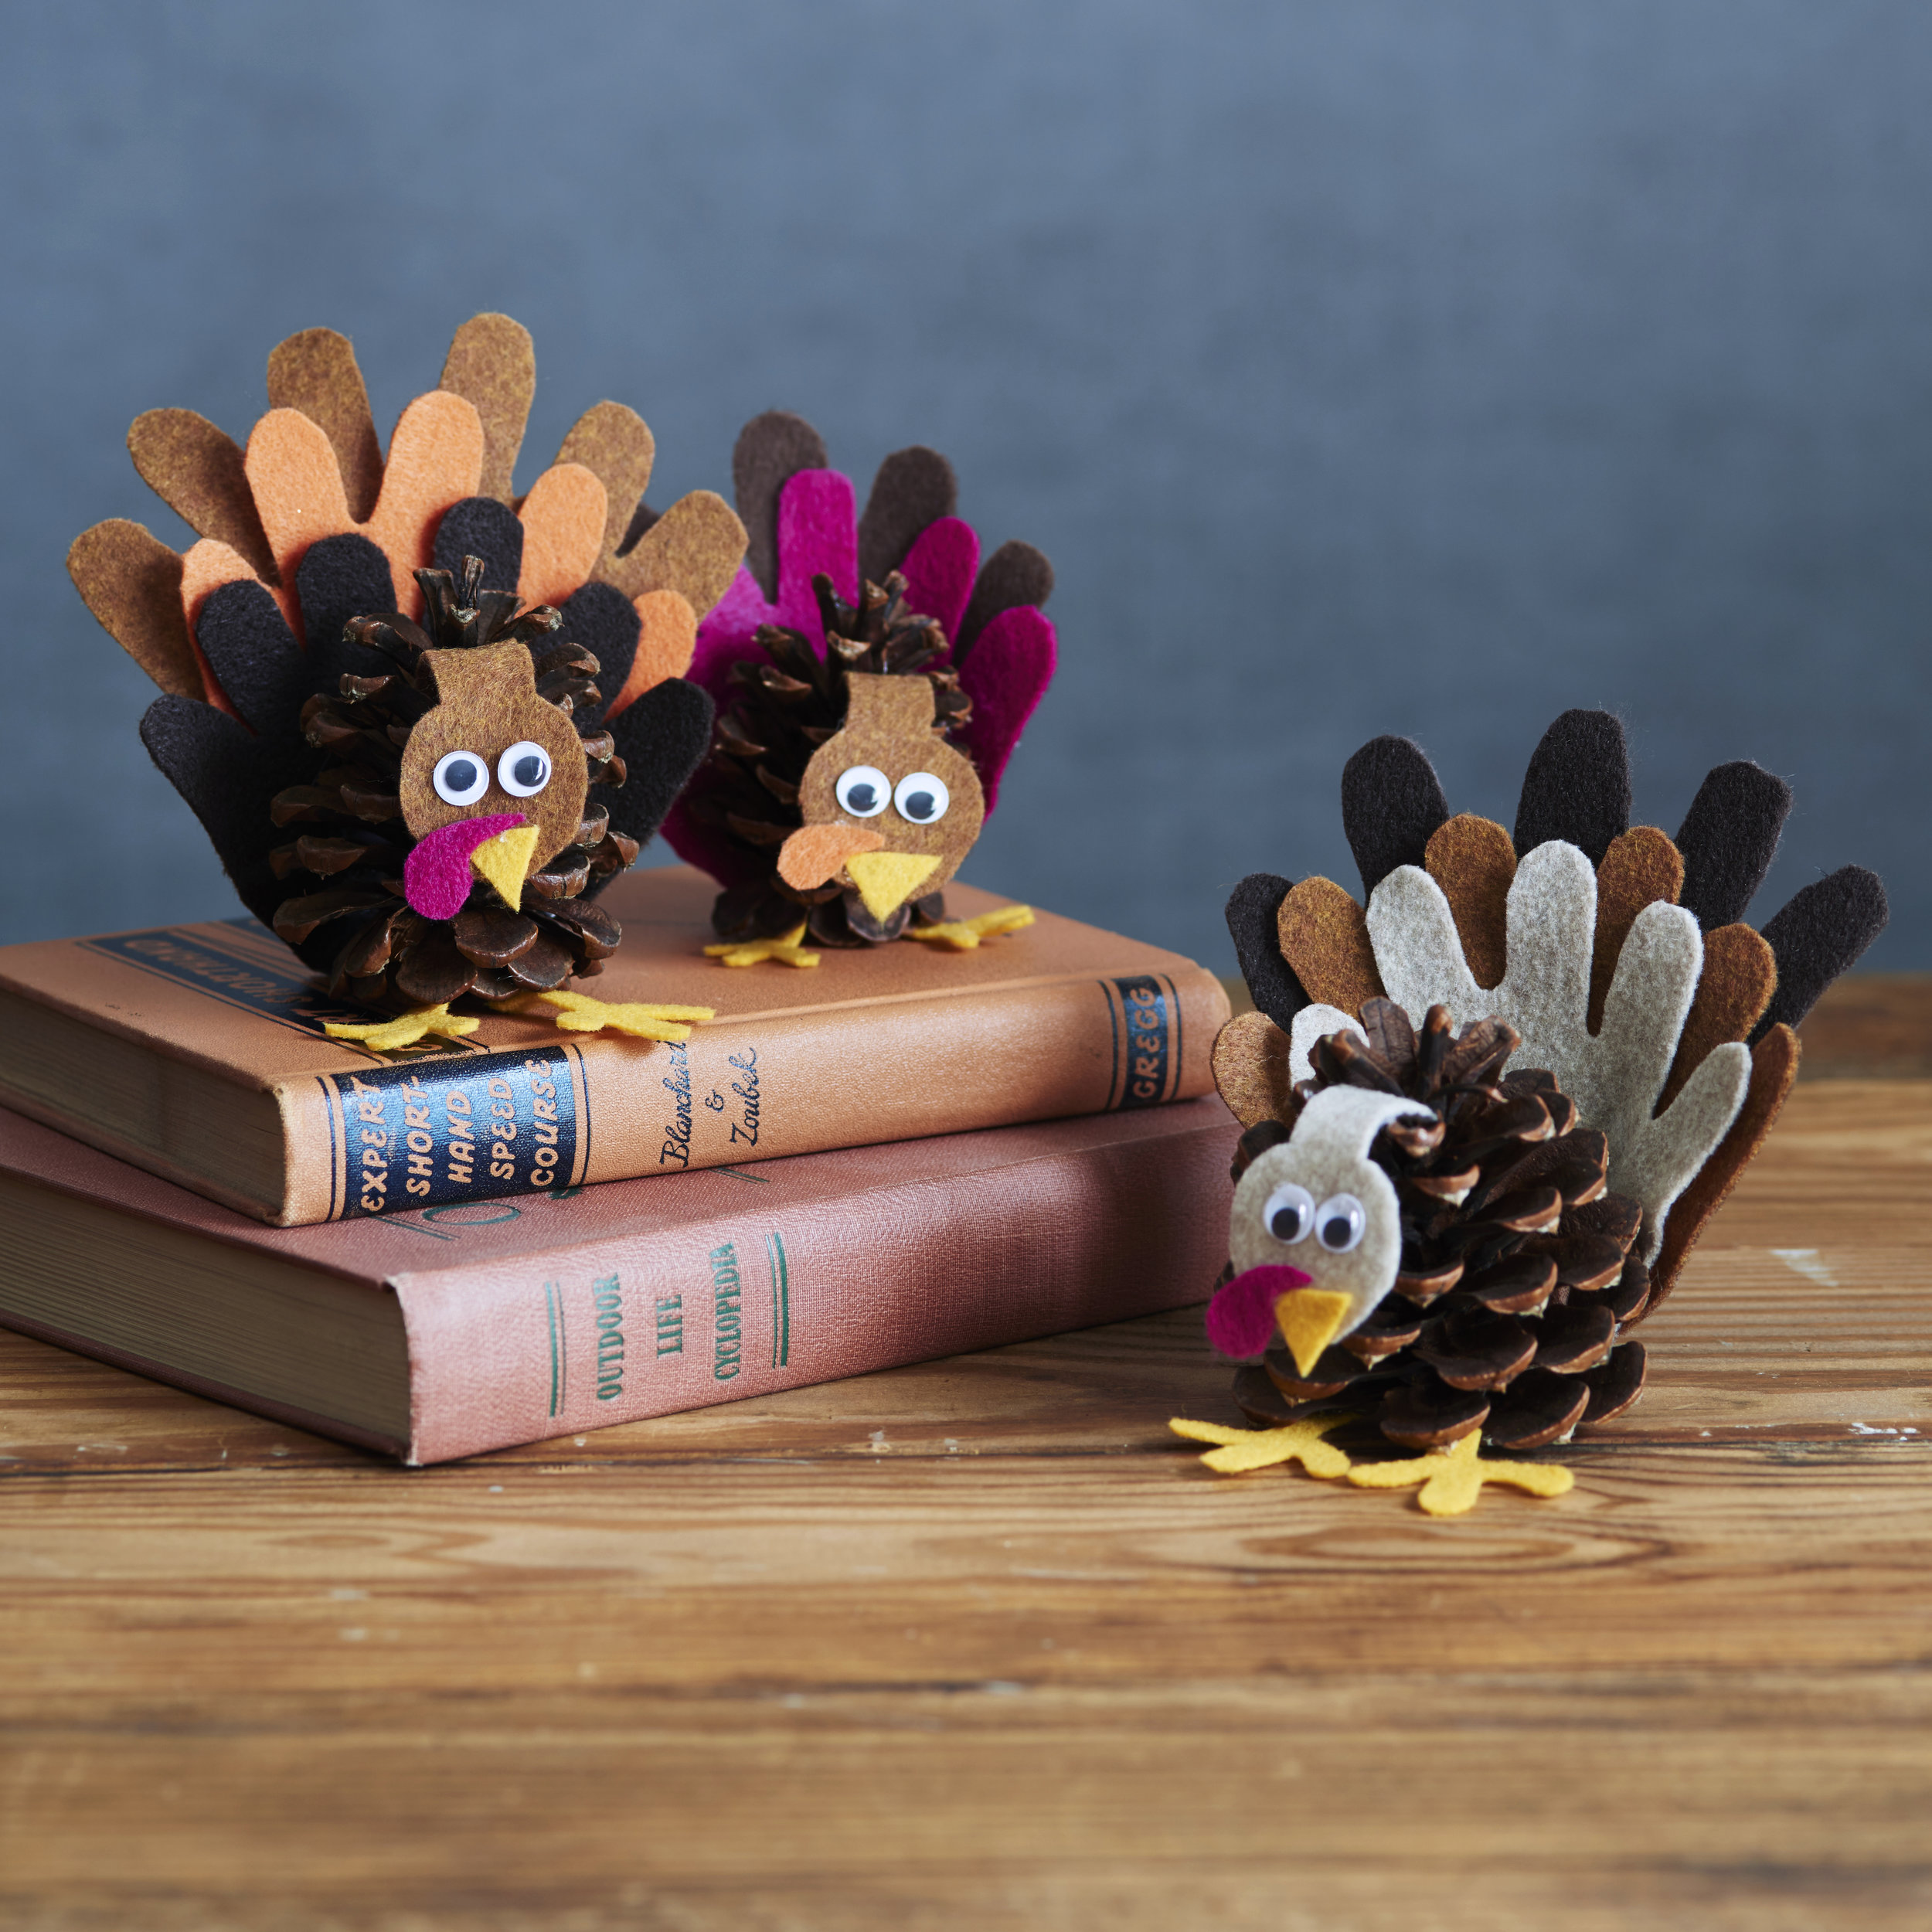 BB_Pinecone_Turkeys_009.jpg